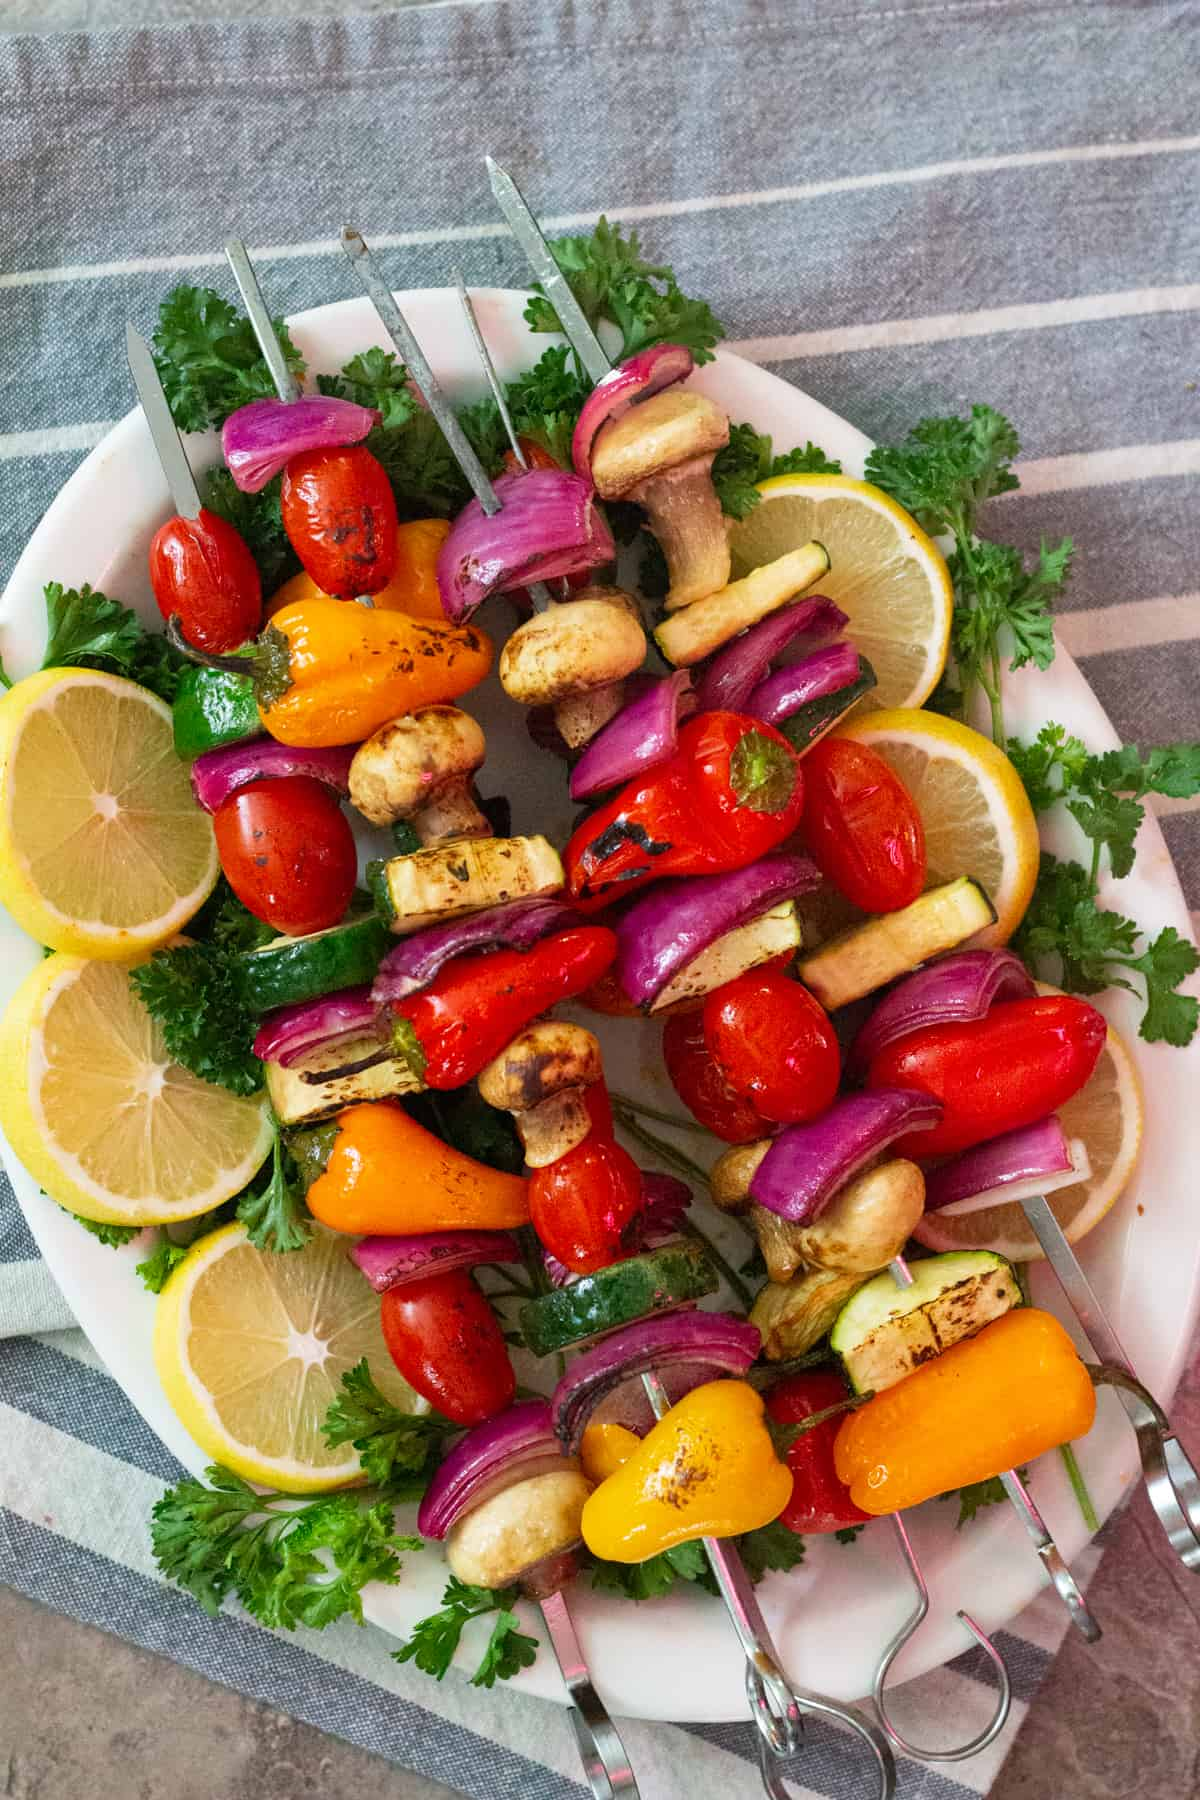 Veggie shish kabob is a great side dish to so many dishes such as chicken shawarma, Greek meatballs or homemade falafels. What I love the most about Mediterranean recipes is that they mix and match so well and complement each other beautifully.